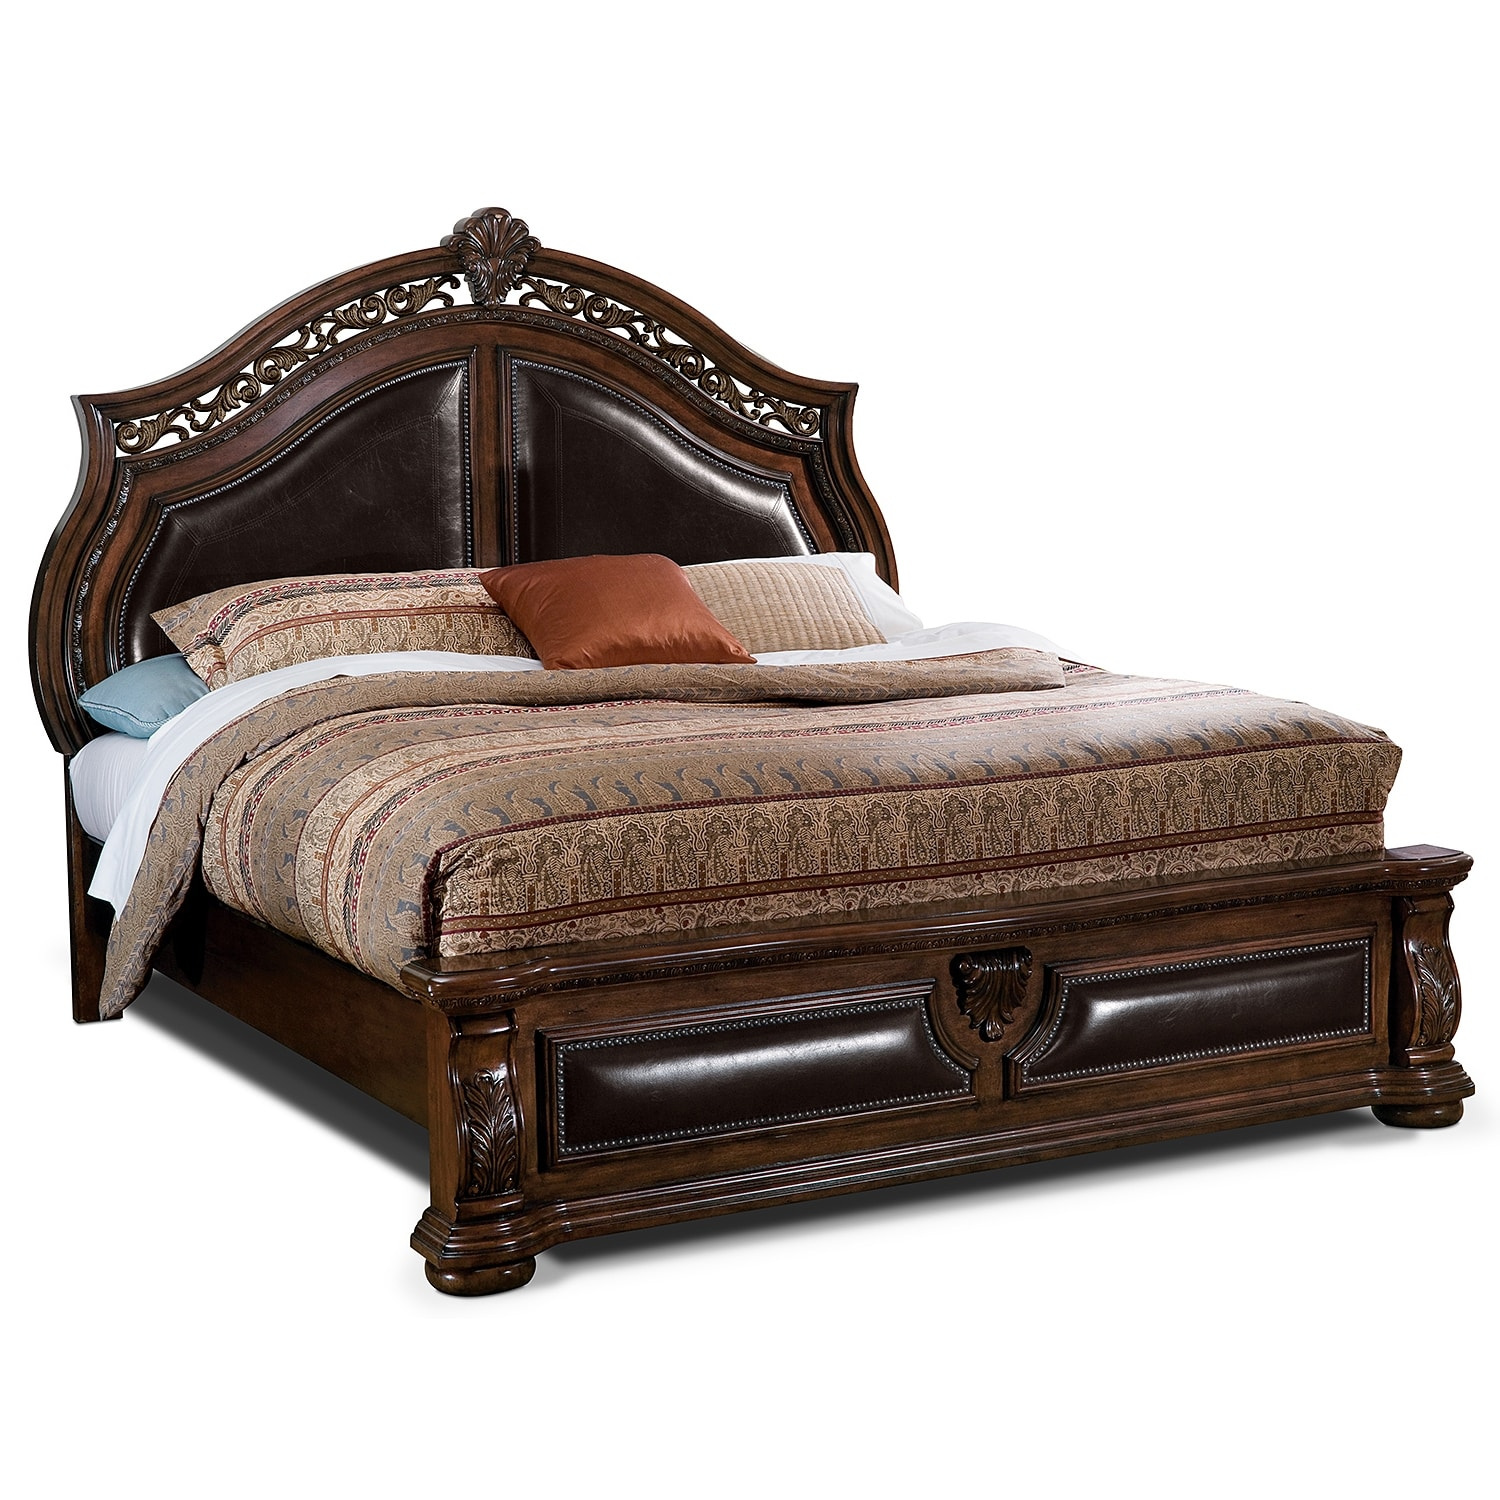 Morocco queen bed american signature furniture for Furniture bedroom furniture